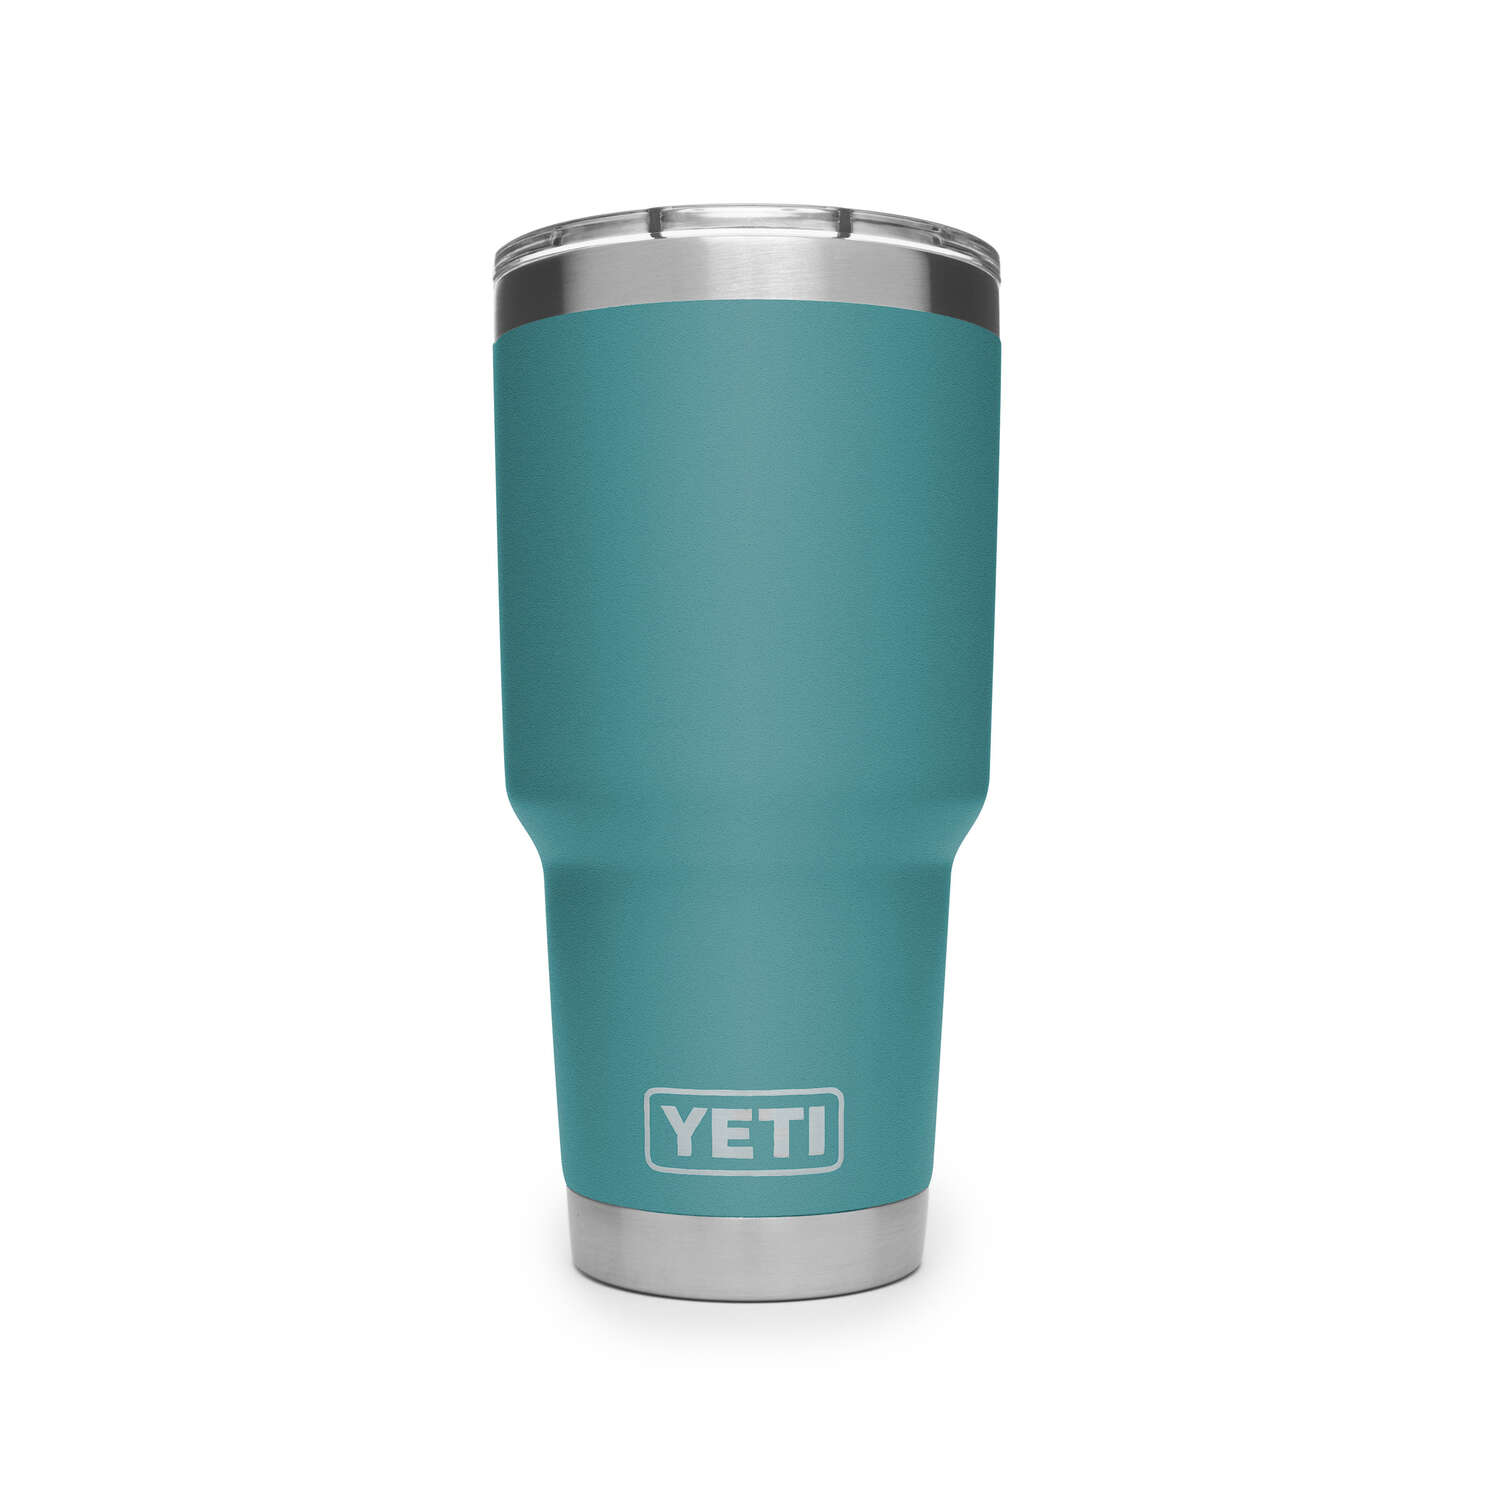 YETI  Rambler  30 oz. Insulated Tumbler  River Green